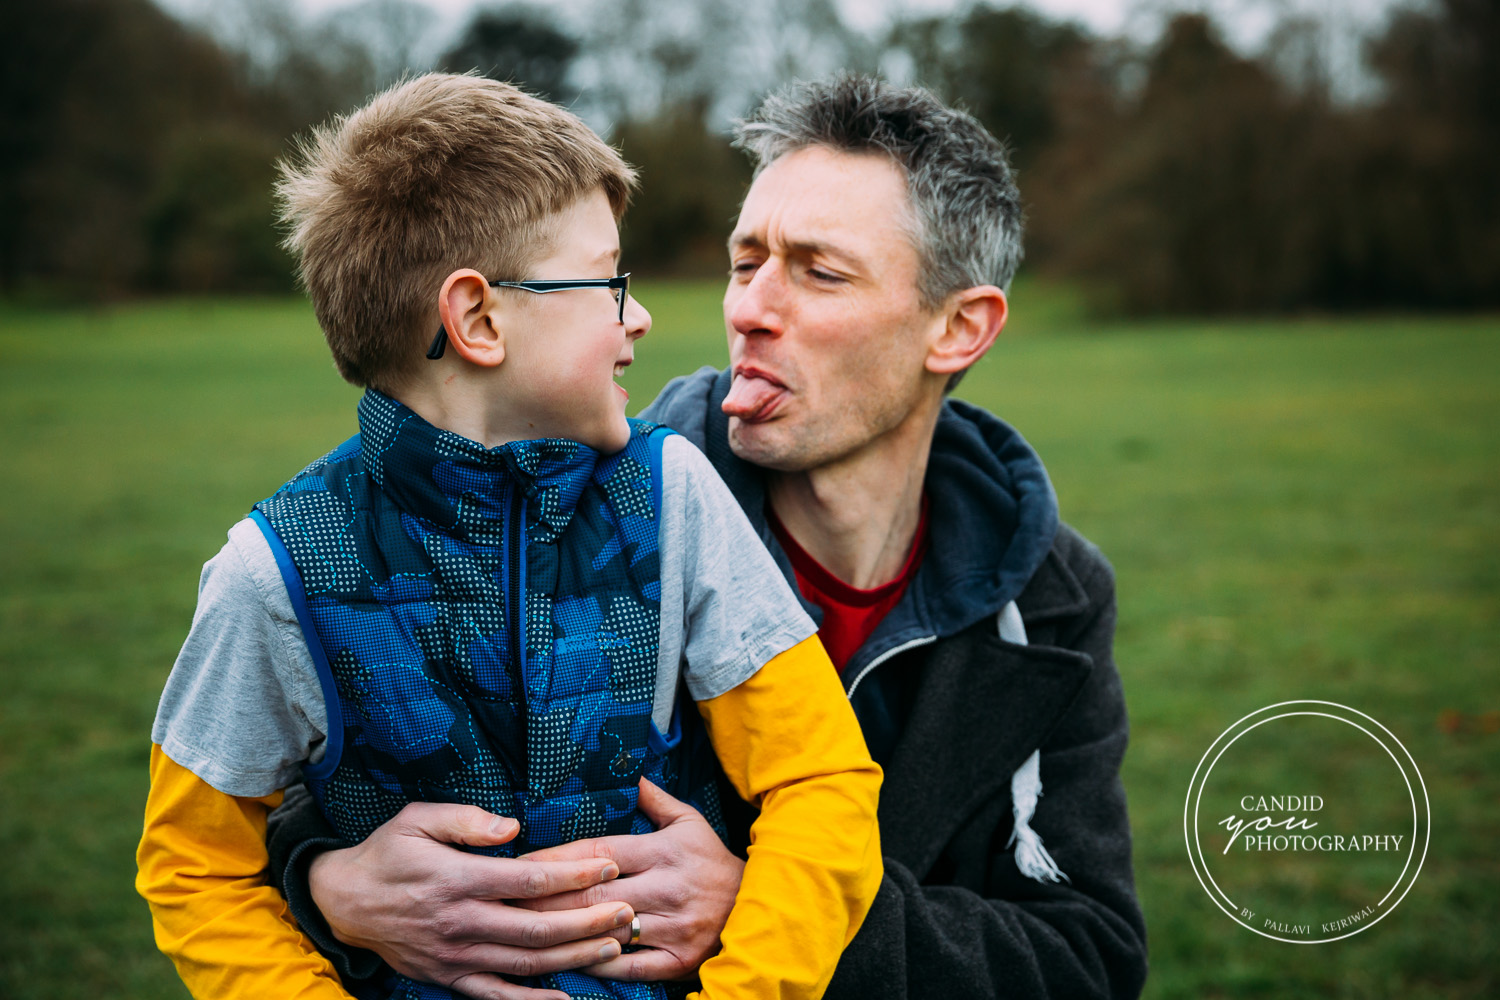 Harborne Dad yanks out tongue at son being cheeky